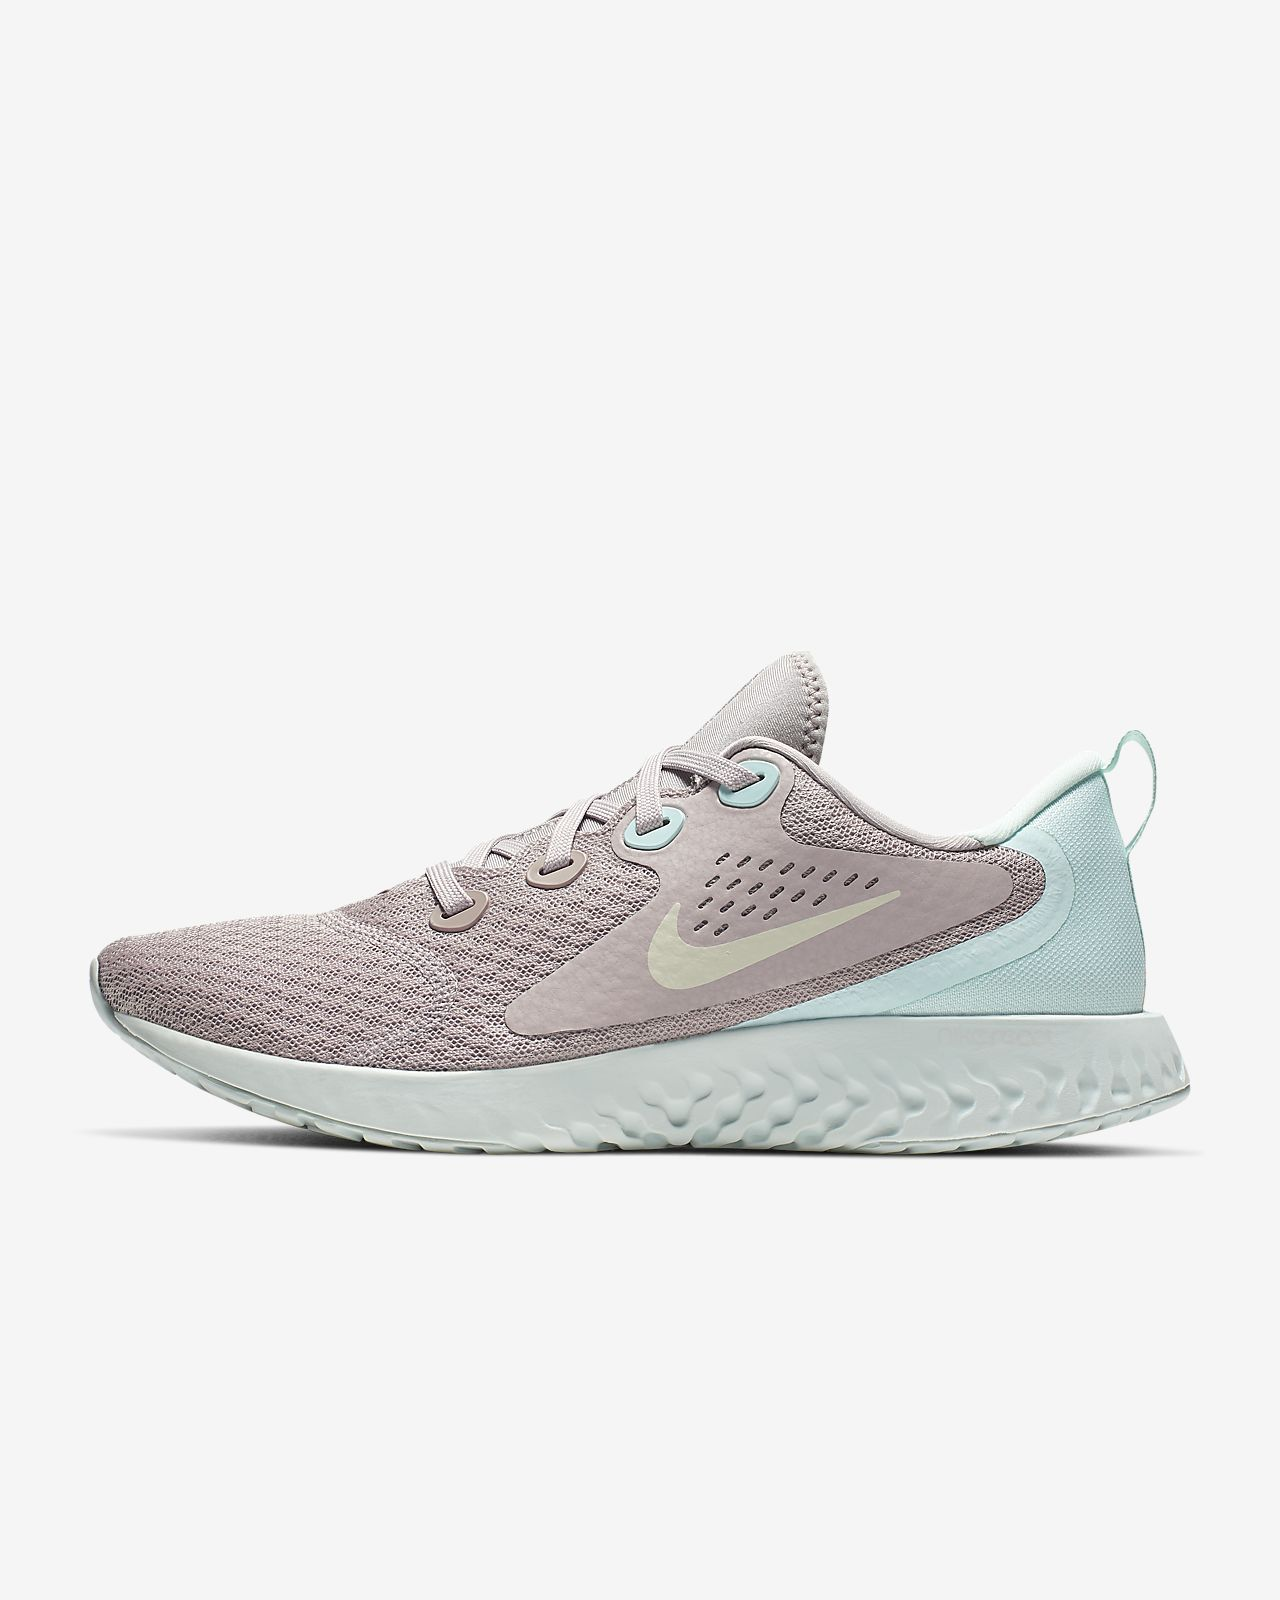 best website 1e6ec 1cd18 Nike Legend React Women's Running Shoe. Nike.com CA